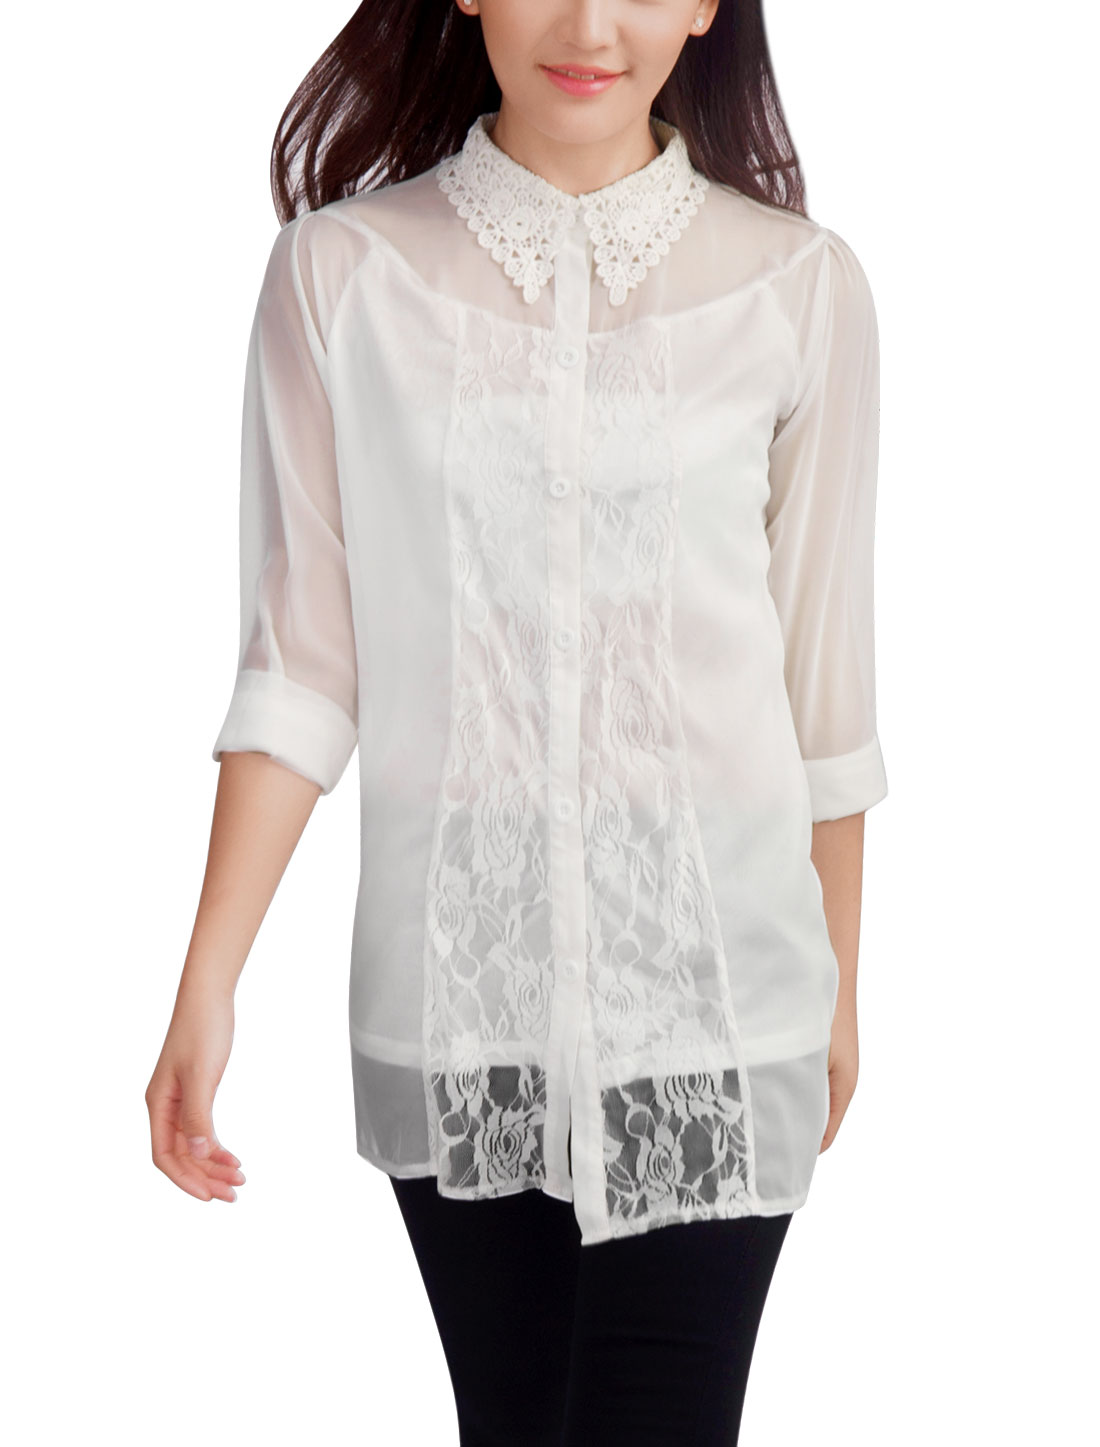 Lady NEW White Color Lace Panel Panel Button Front Blouse XL